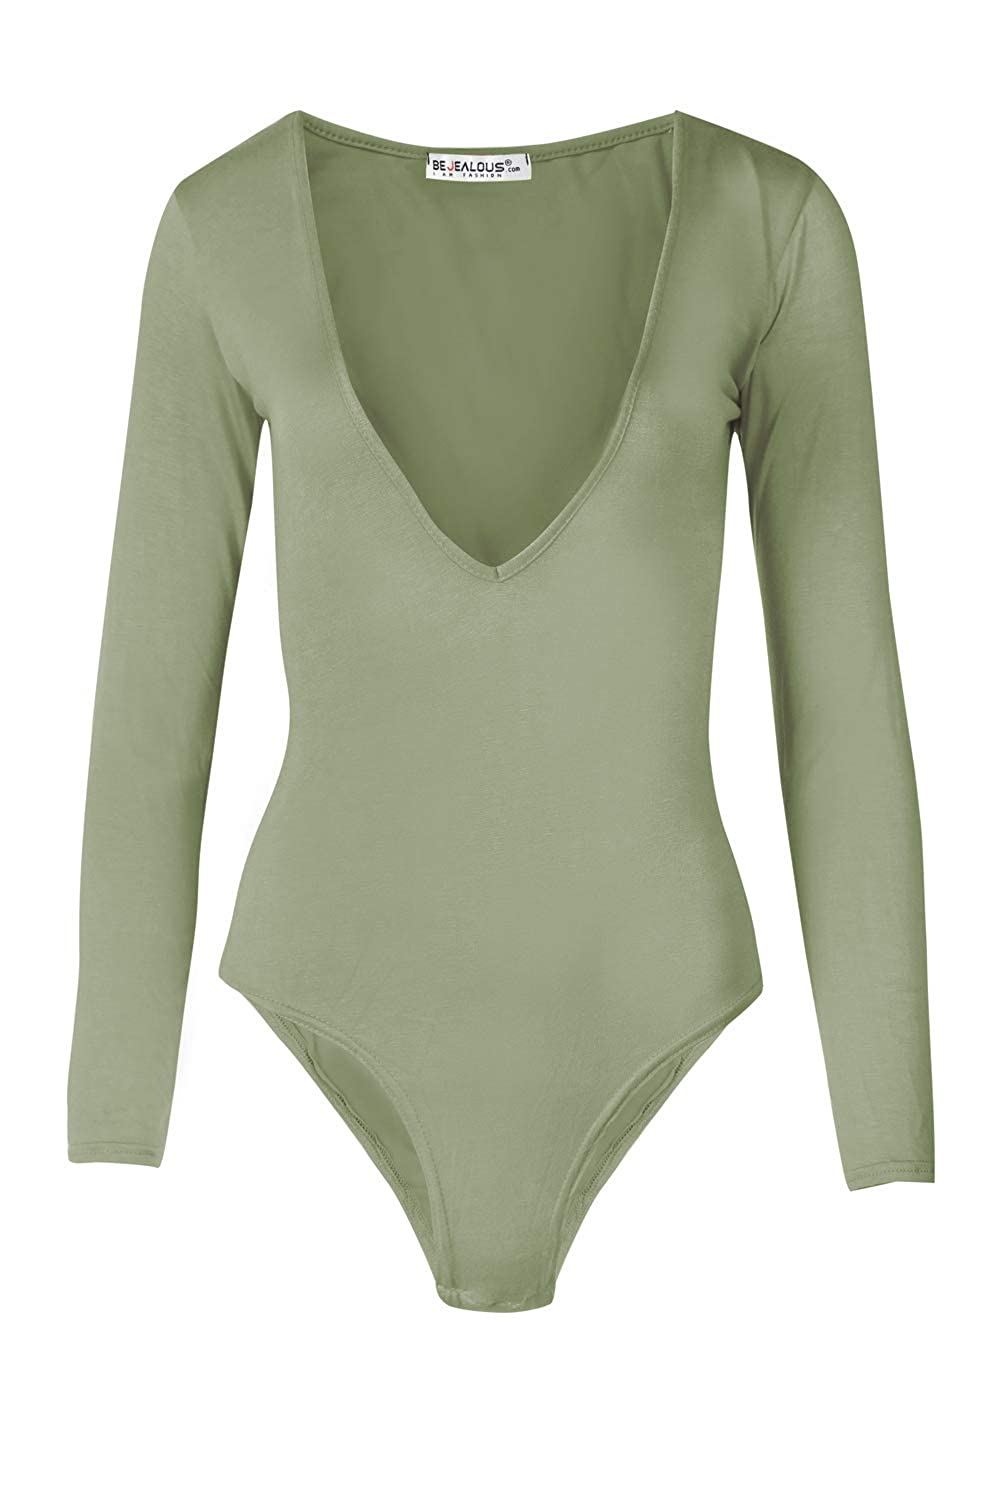 Womens Ladies Long Sleeve Plunge V Neck Low Side Back Bodysuit Leotard Top Khaki